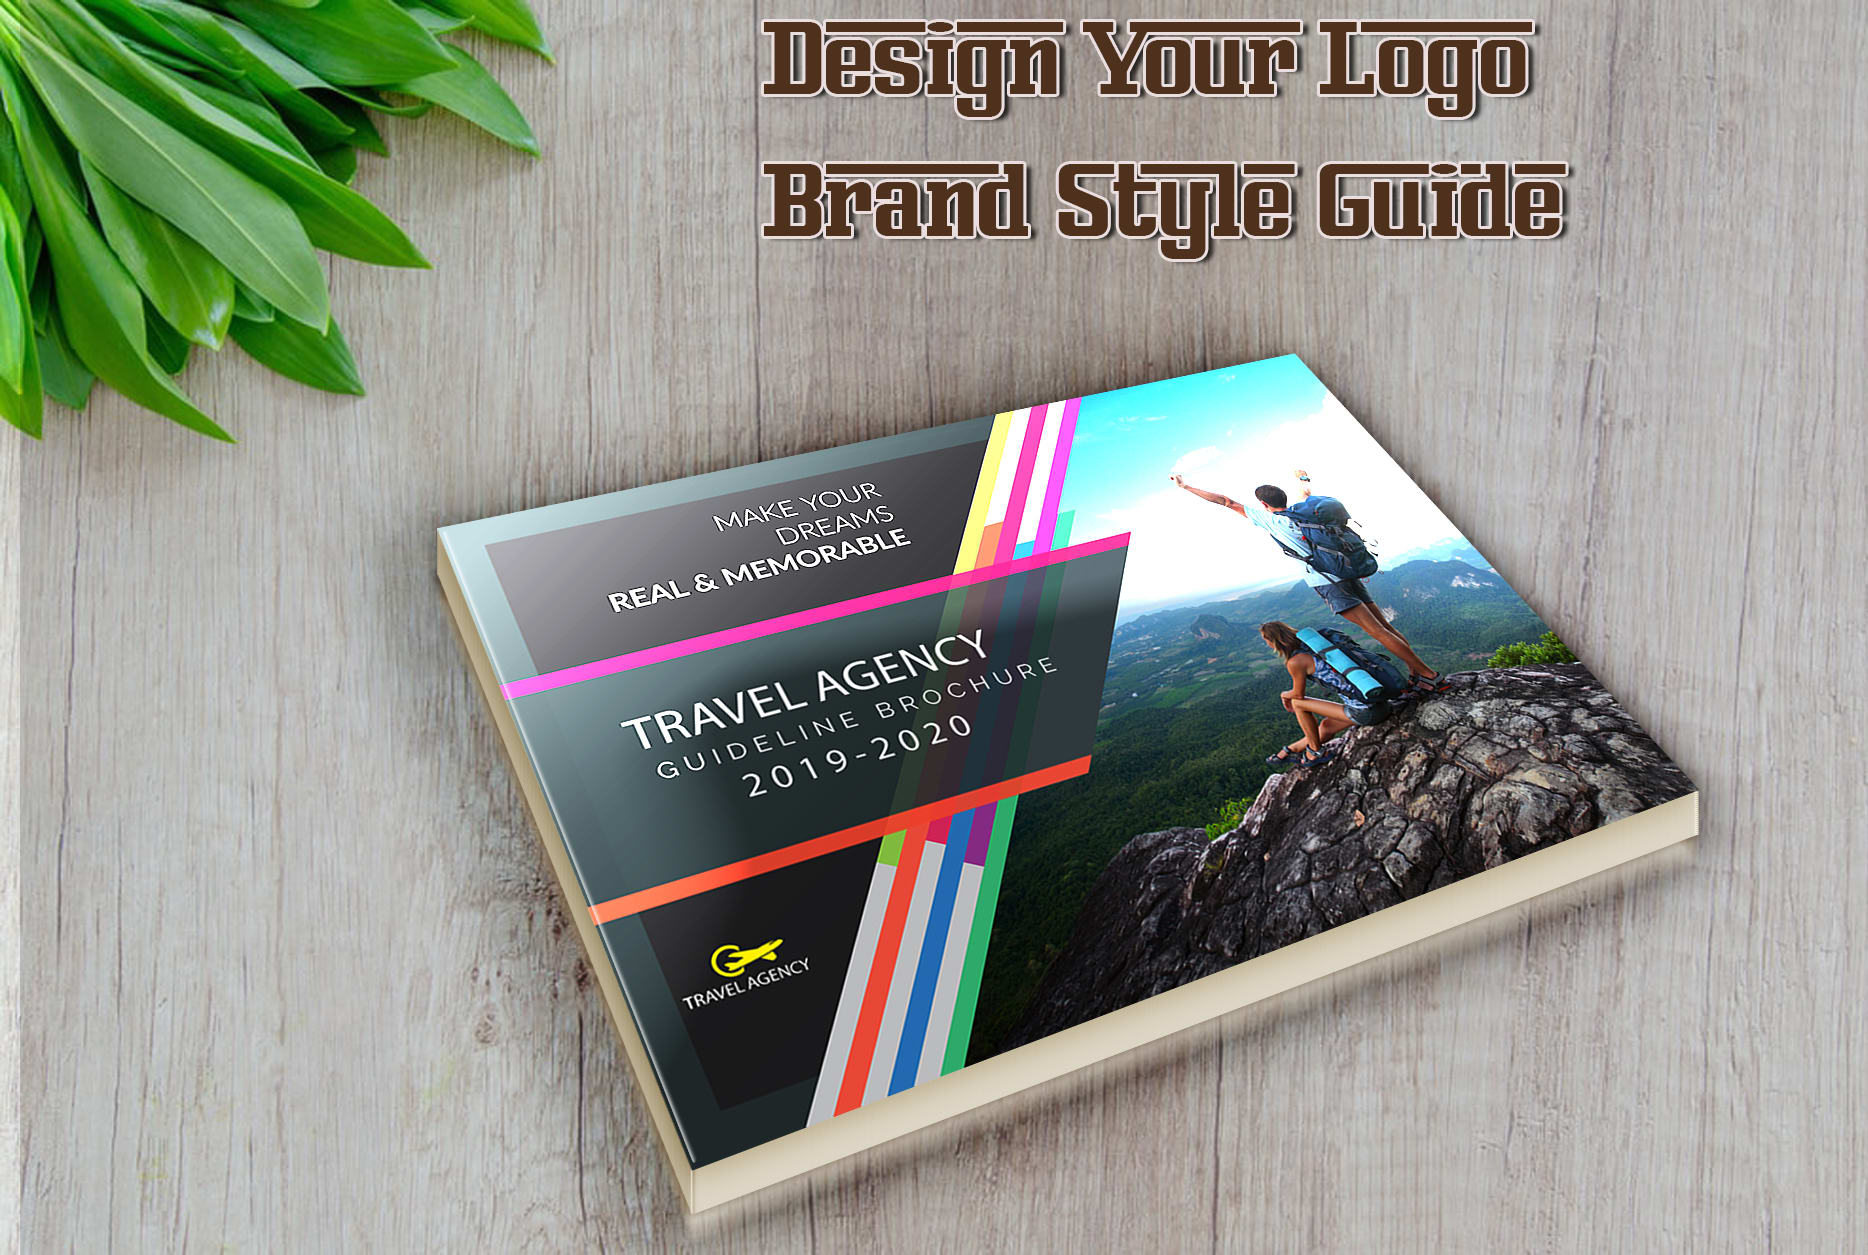 I will design your logo and brand style guide quickly